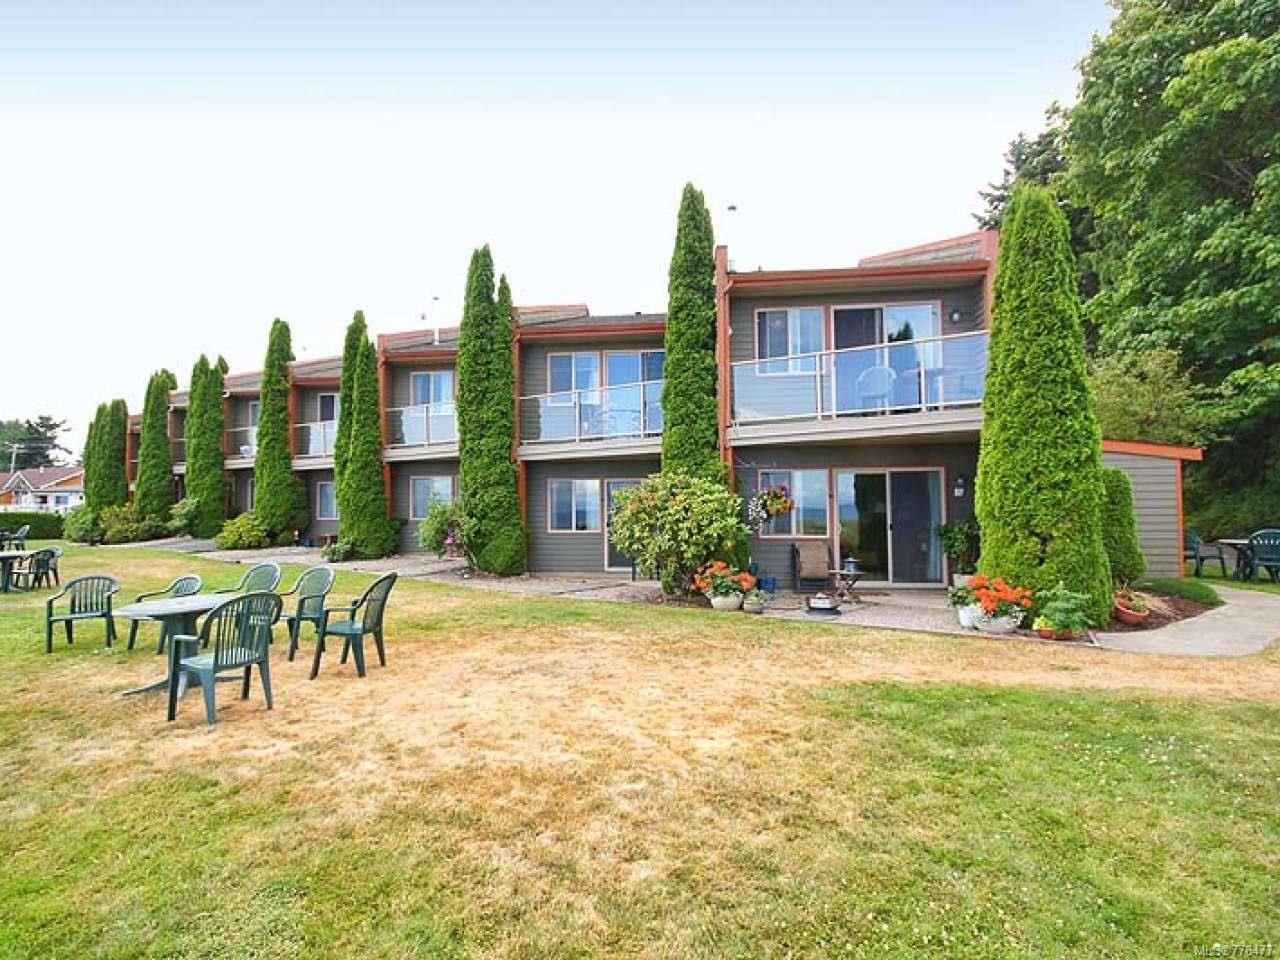 Main Photo: 210 3295 W ISLAND W Highway in QUALICUM BEACH: PQ Qualicum Beach Row/Townhouse for sale (Parksville/Qualicum)  : MLS®# 776477